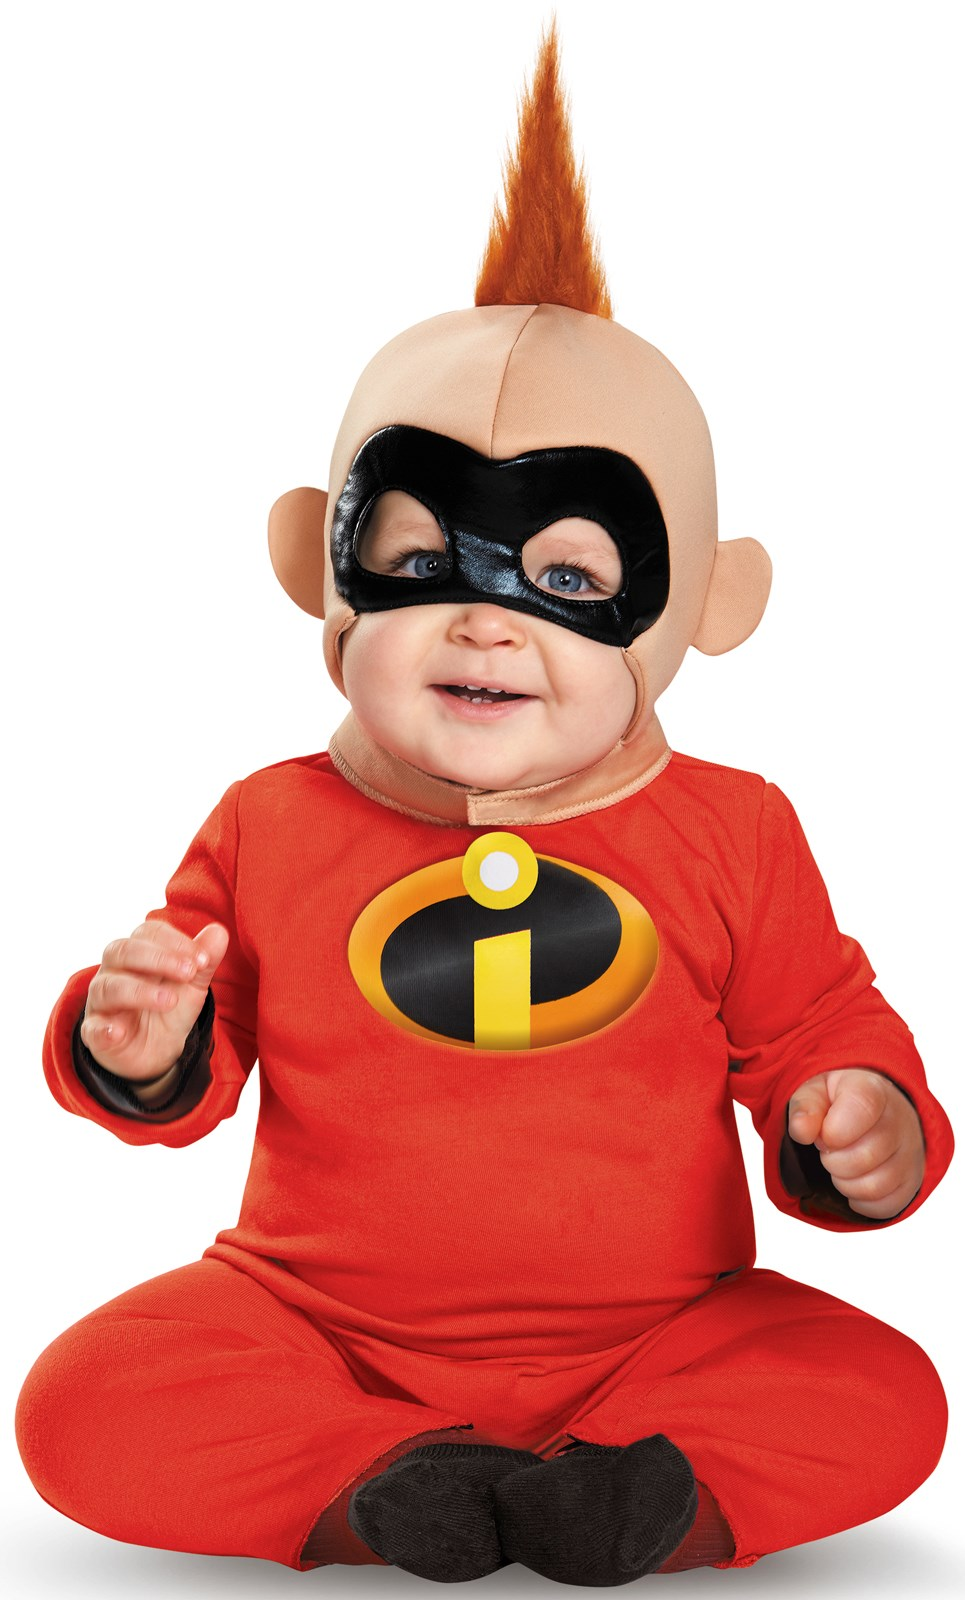 Disneys the Incredibles: Baby Jack Jack Deluxe Costume For Babies